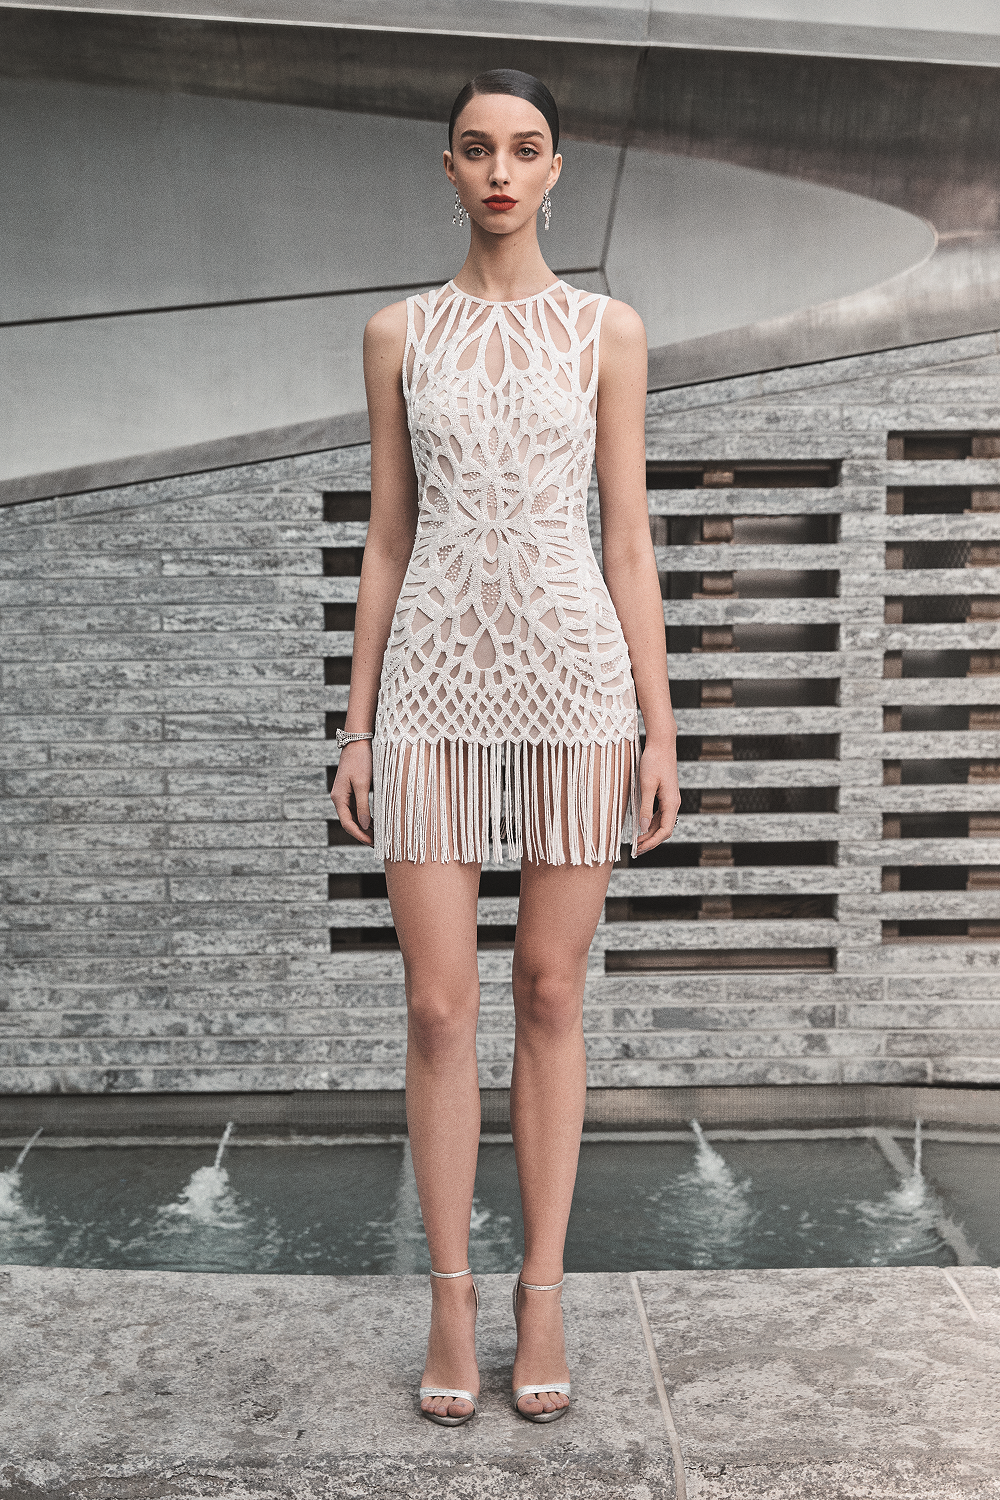 A Naeem Khan short pattern wedding dress with fringe